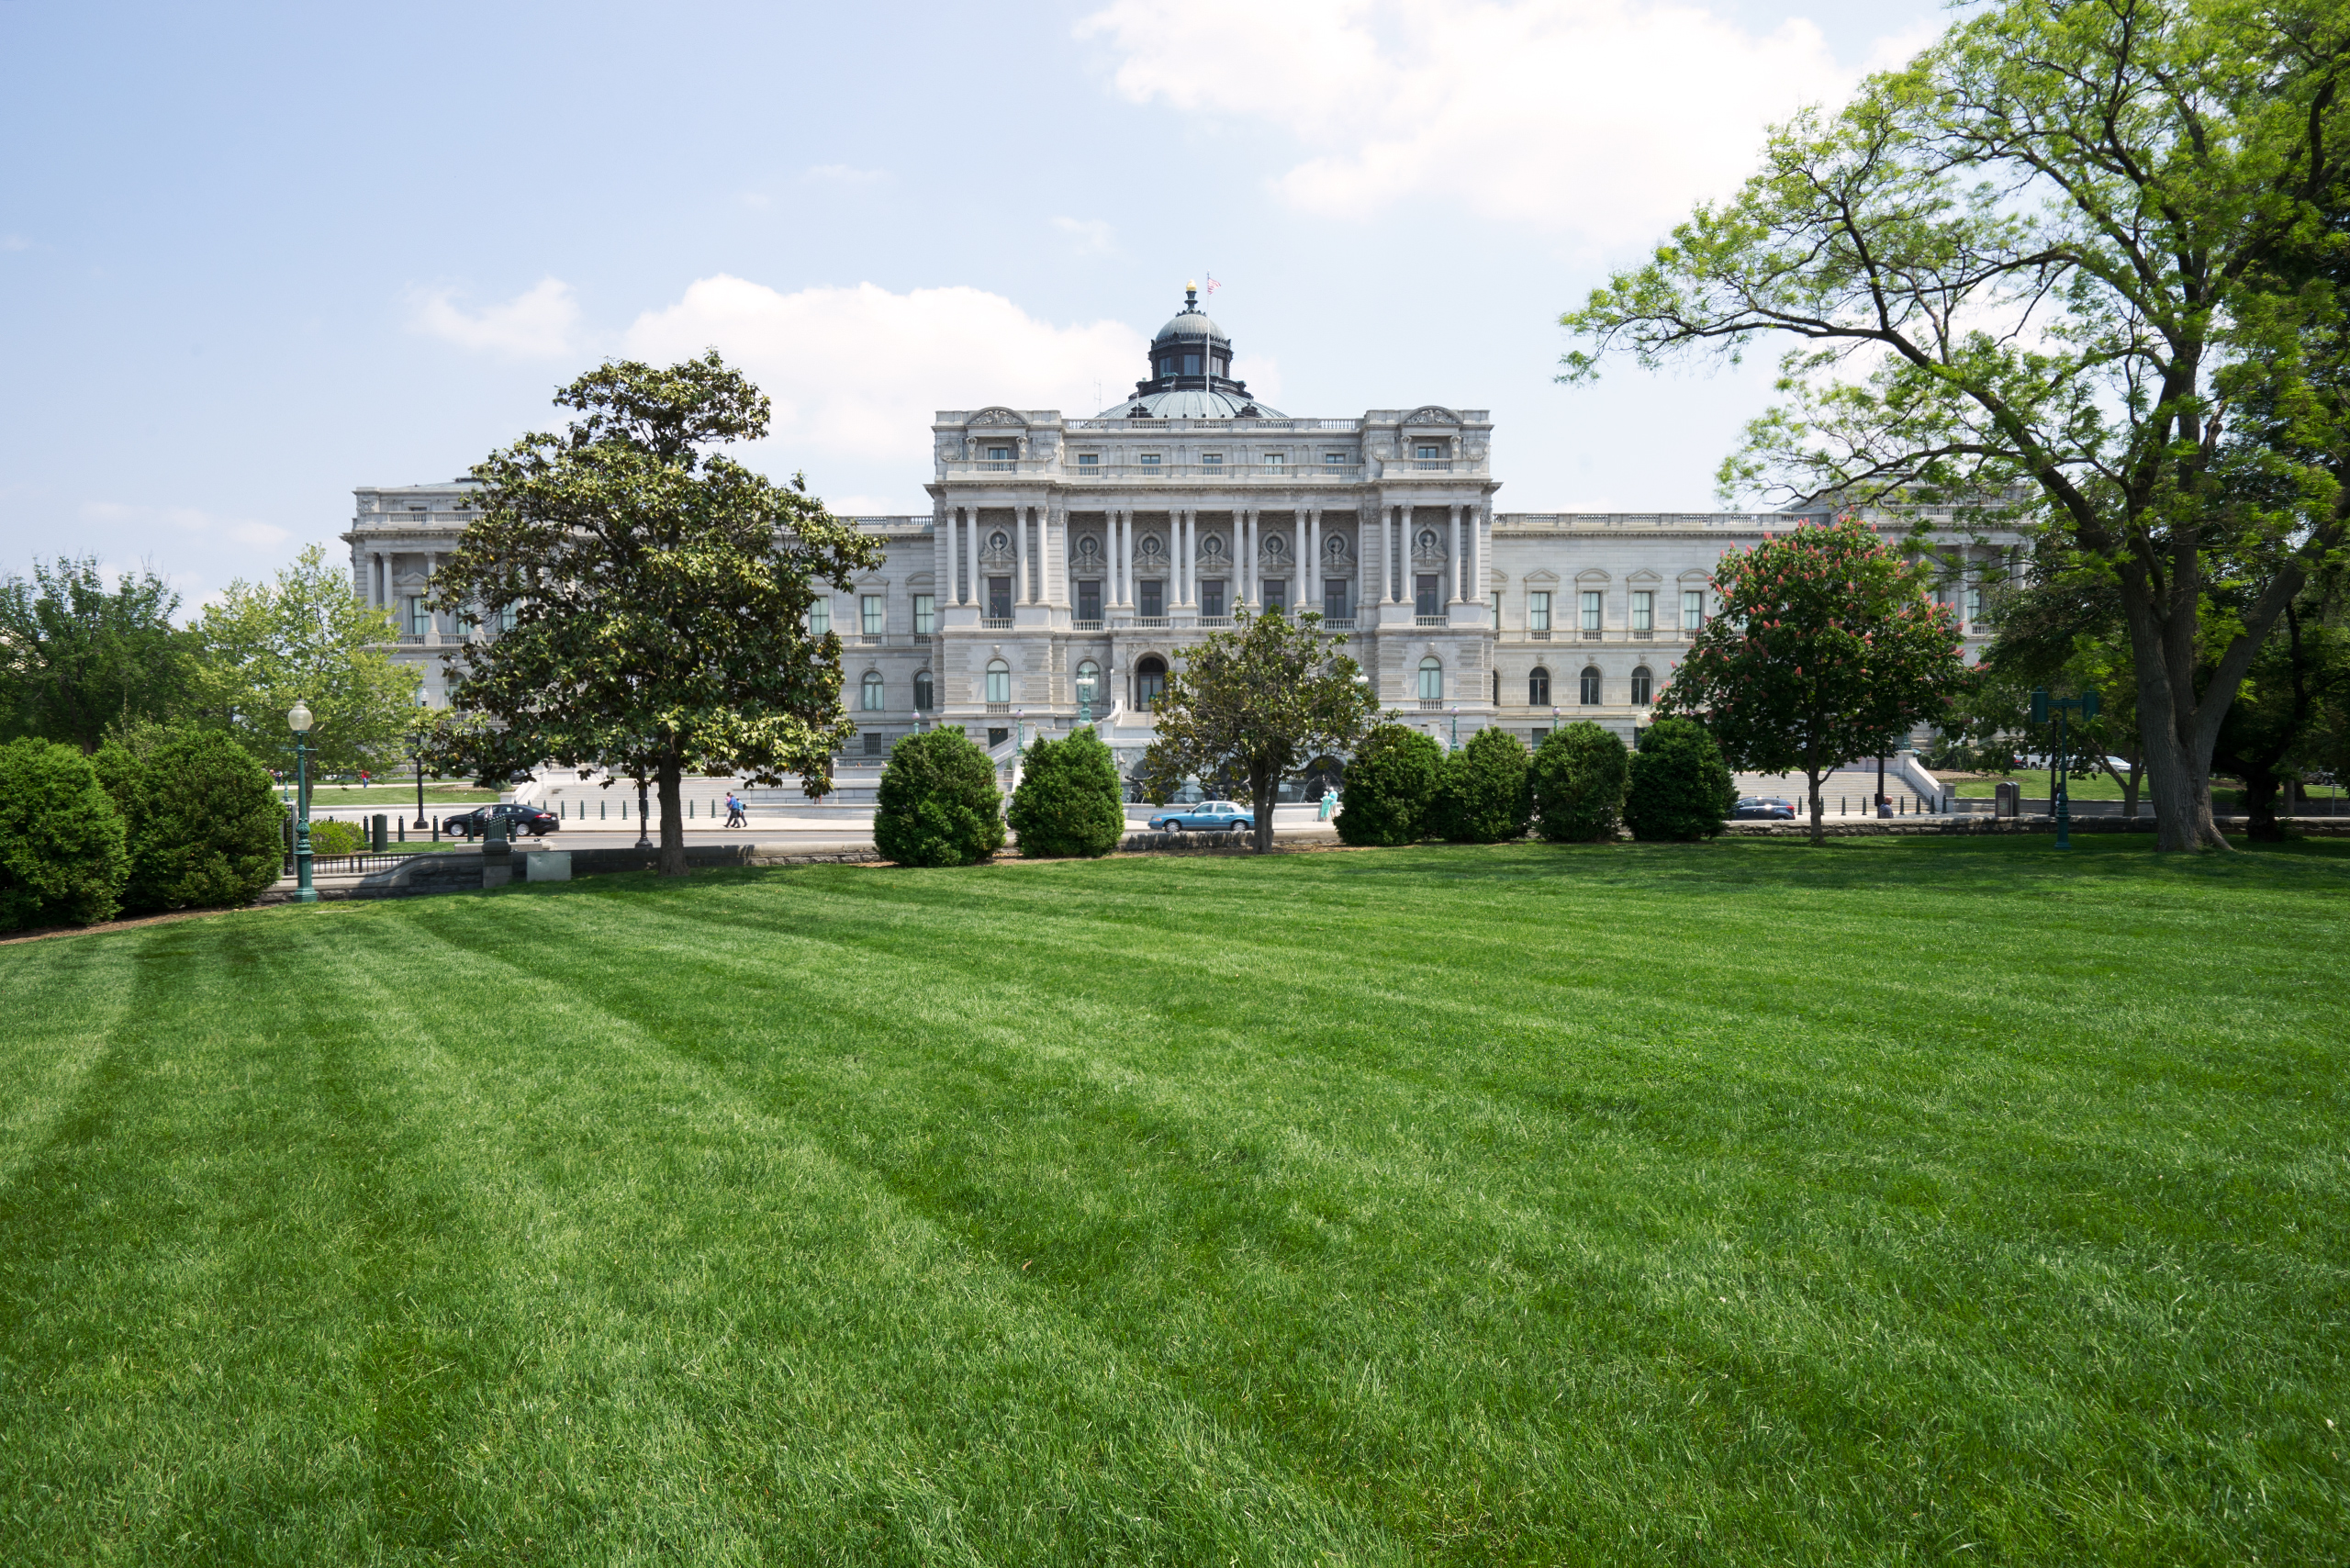 The Library of Congress – Jefferson Building | Photo: Matthias Ries